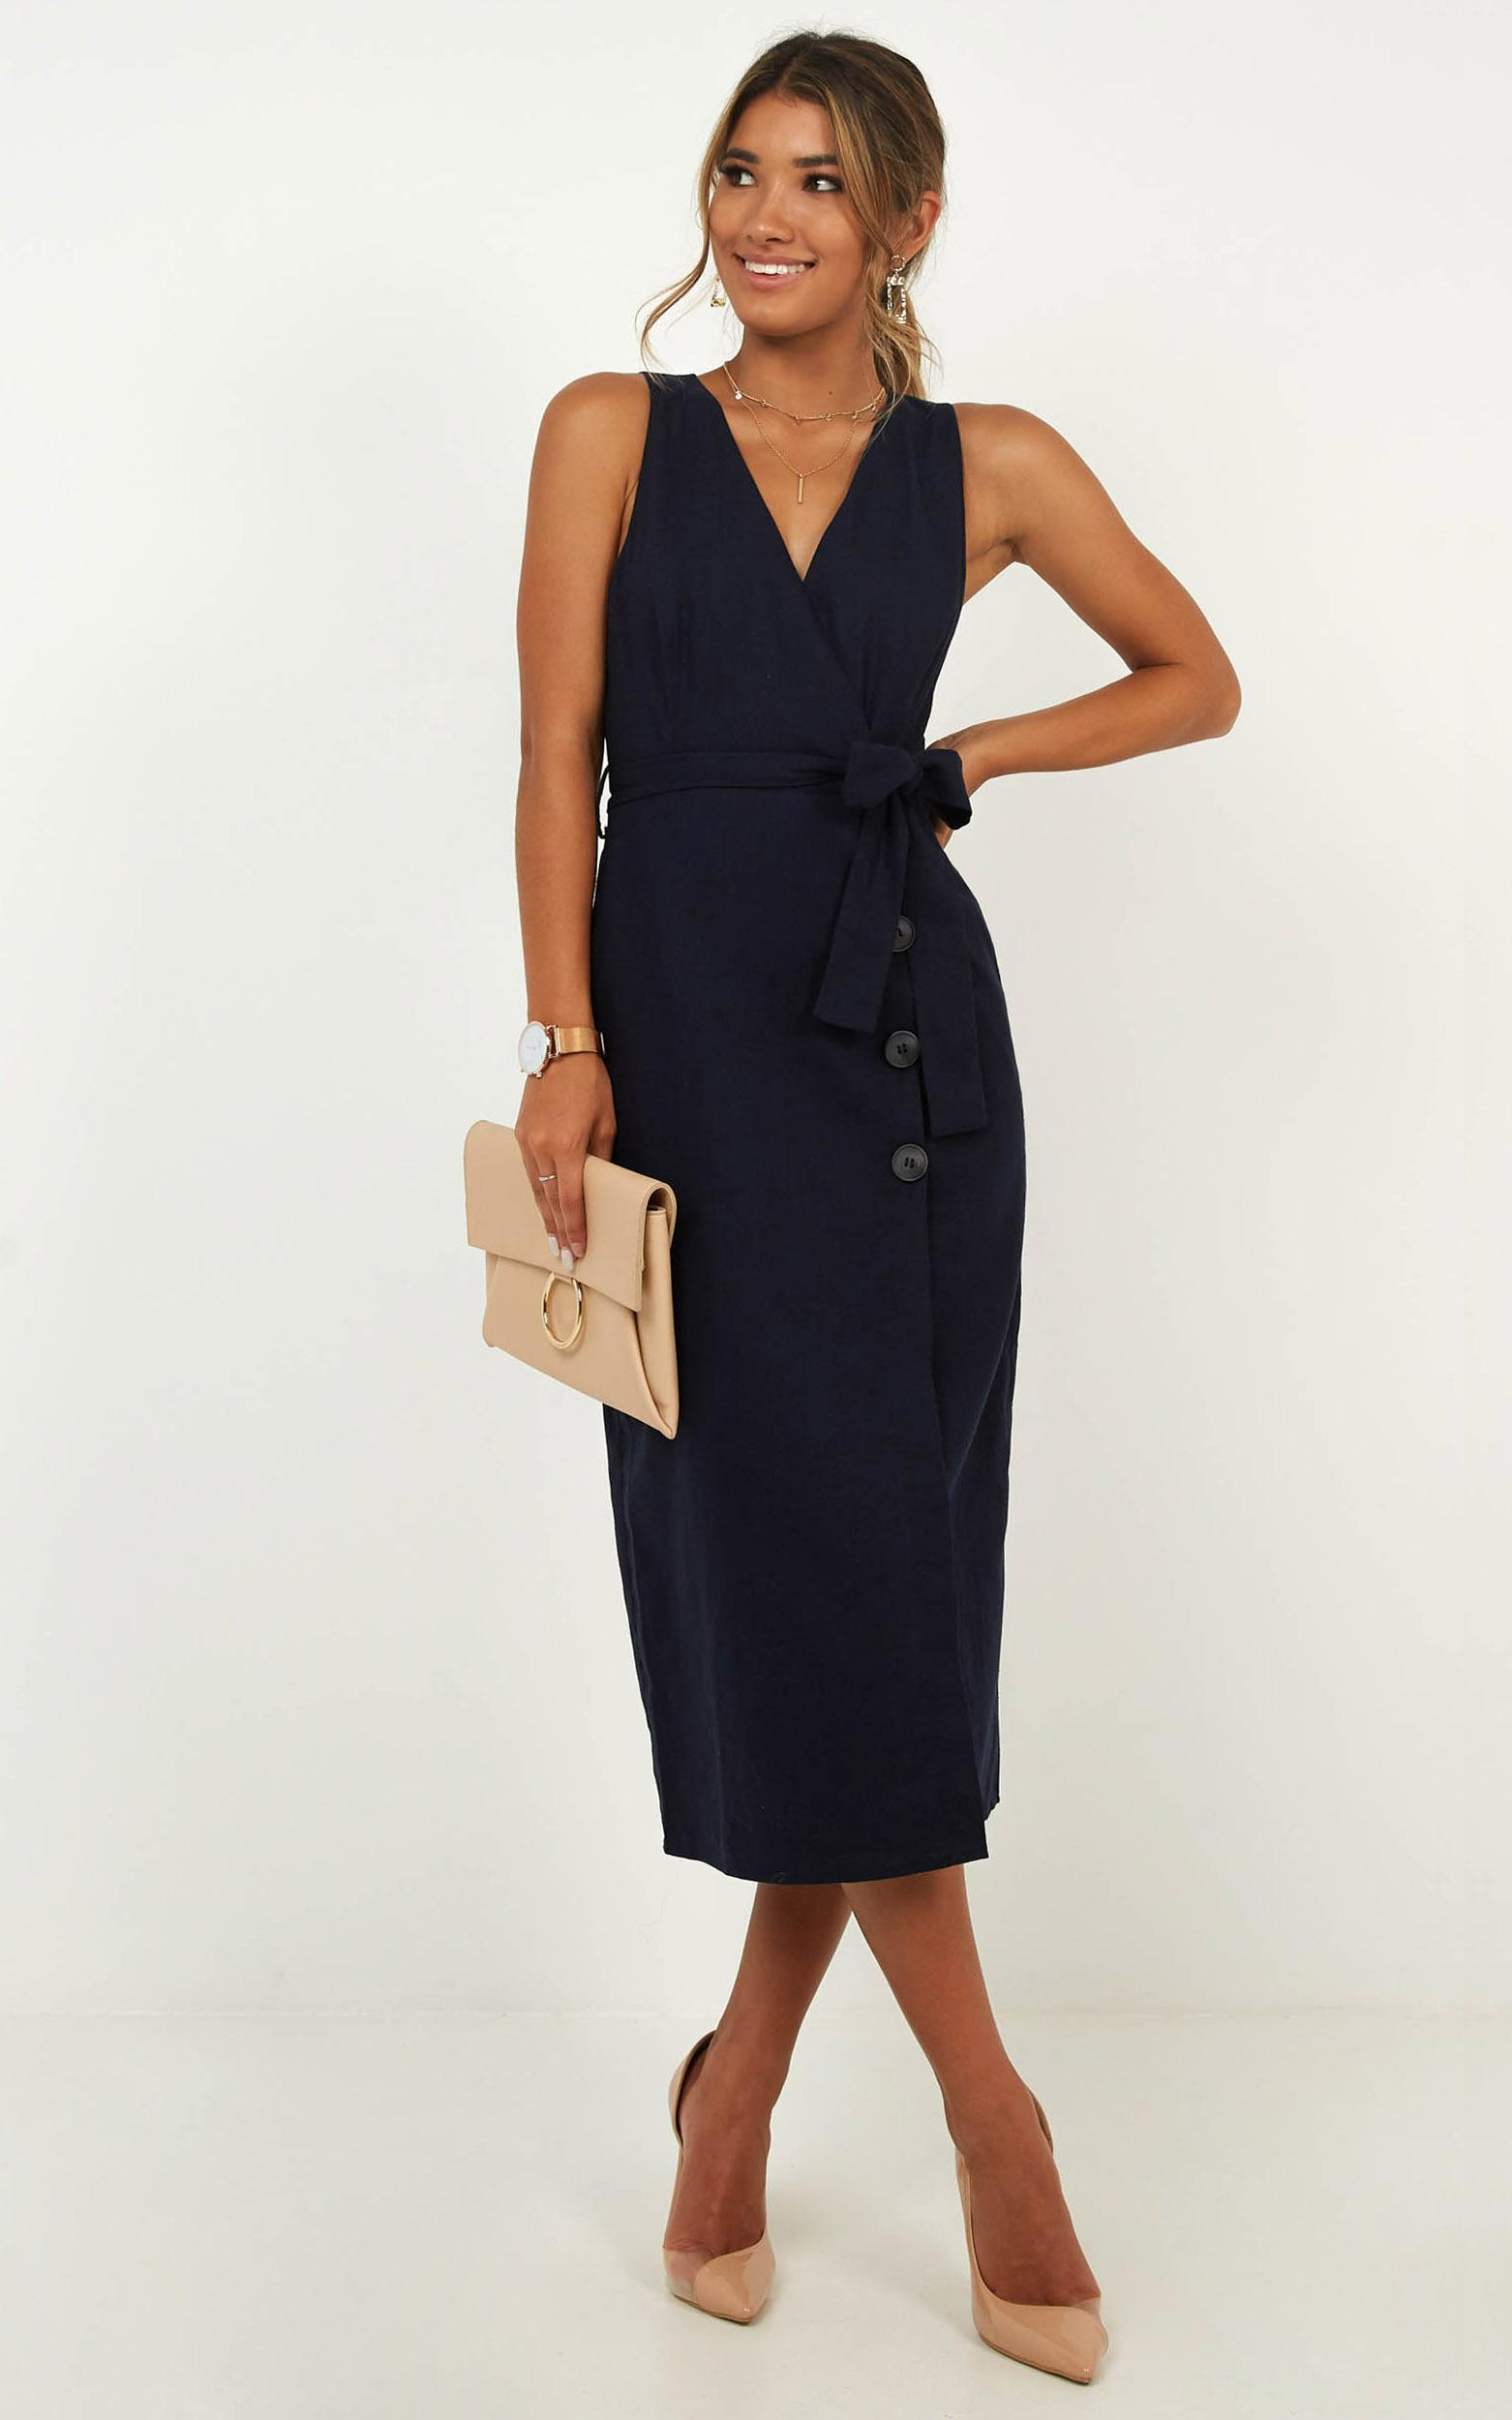 Out Of Office Dress in navy linen look - 20 (XXXXL), Navy, hi-res image number null